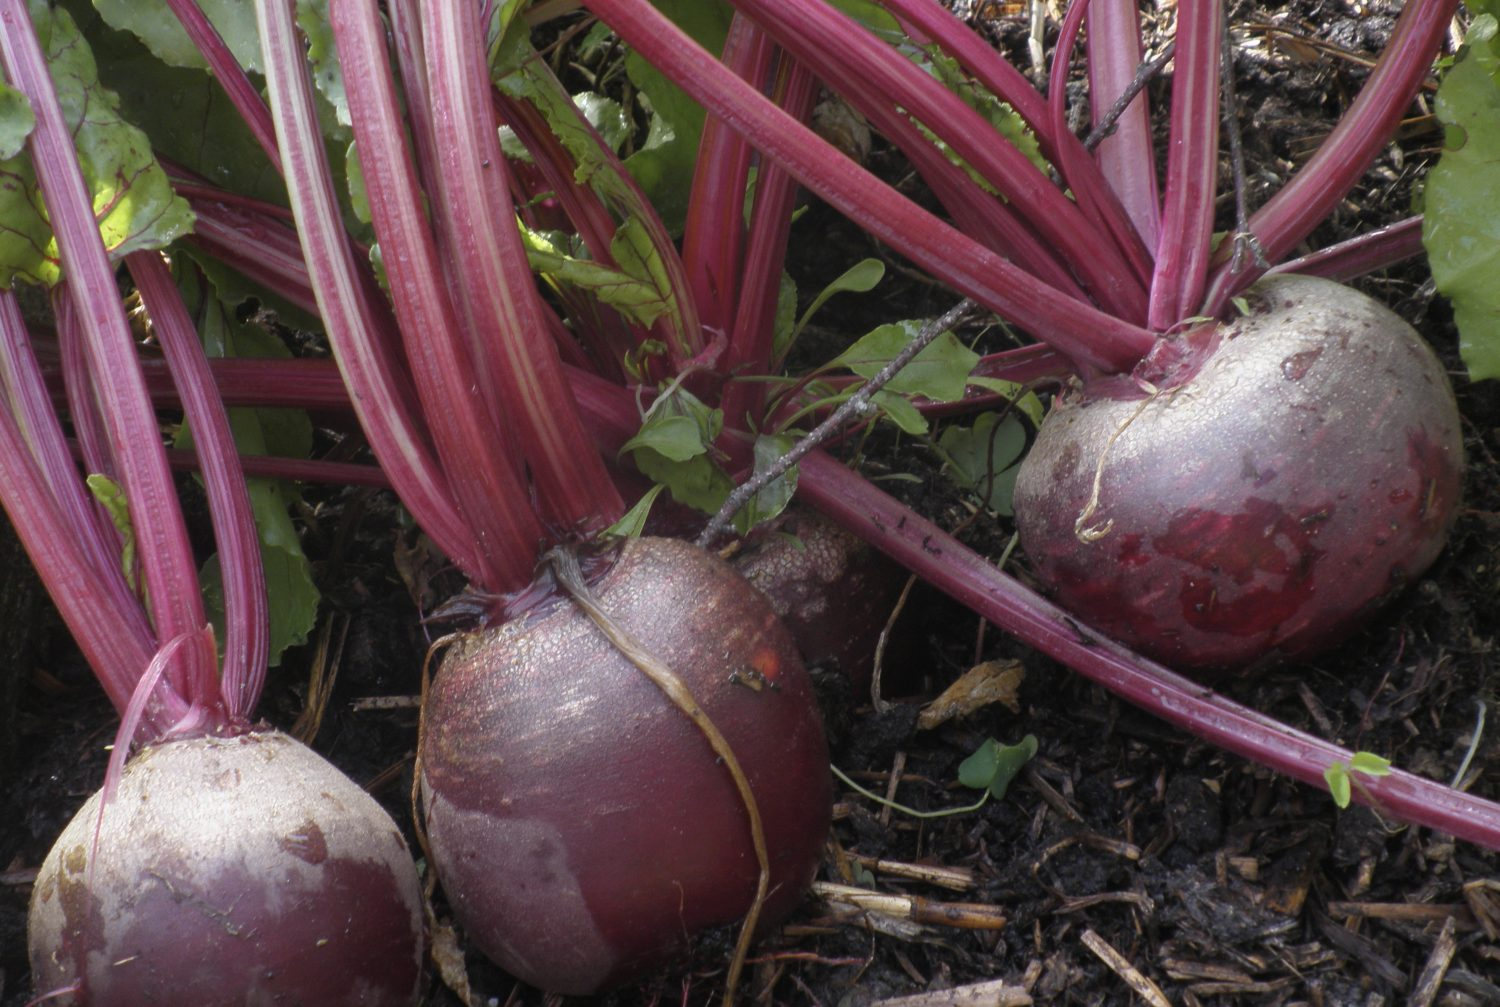 Harvest beetroot from an early sowing, or sow some more now